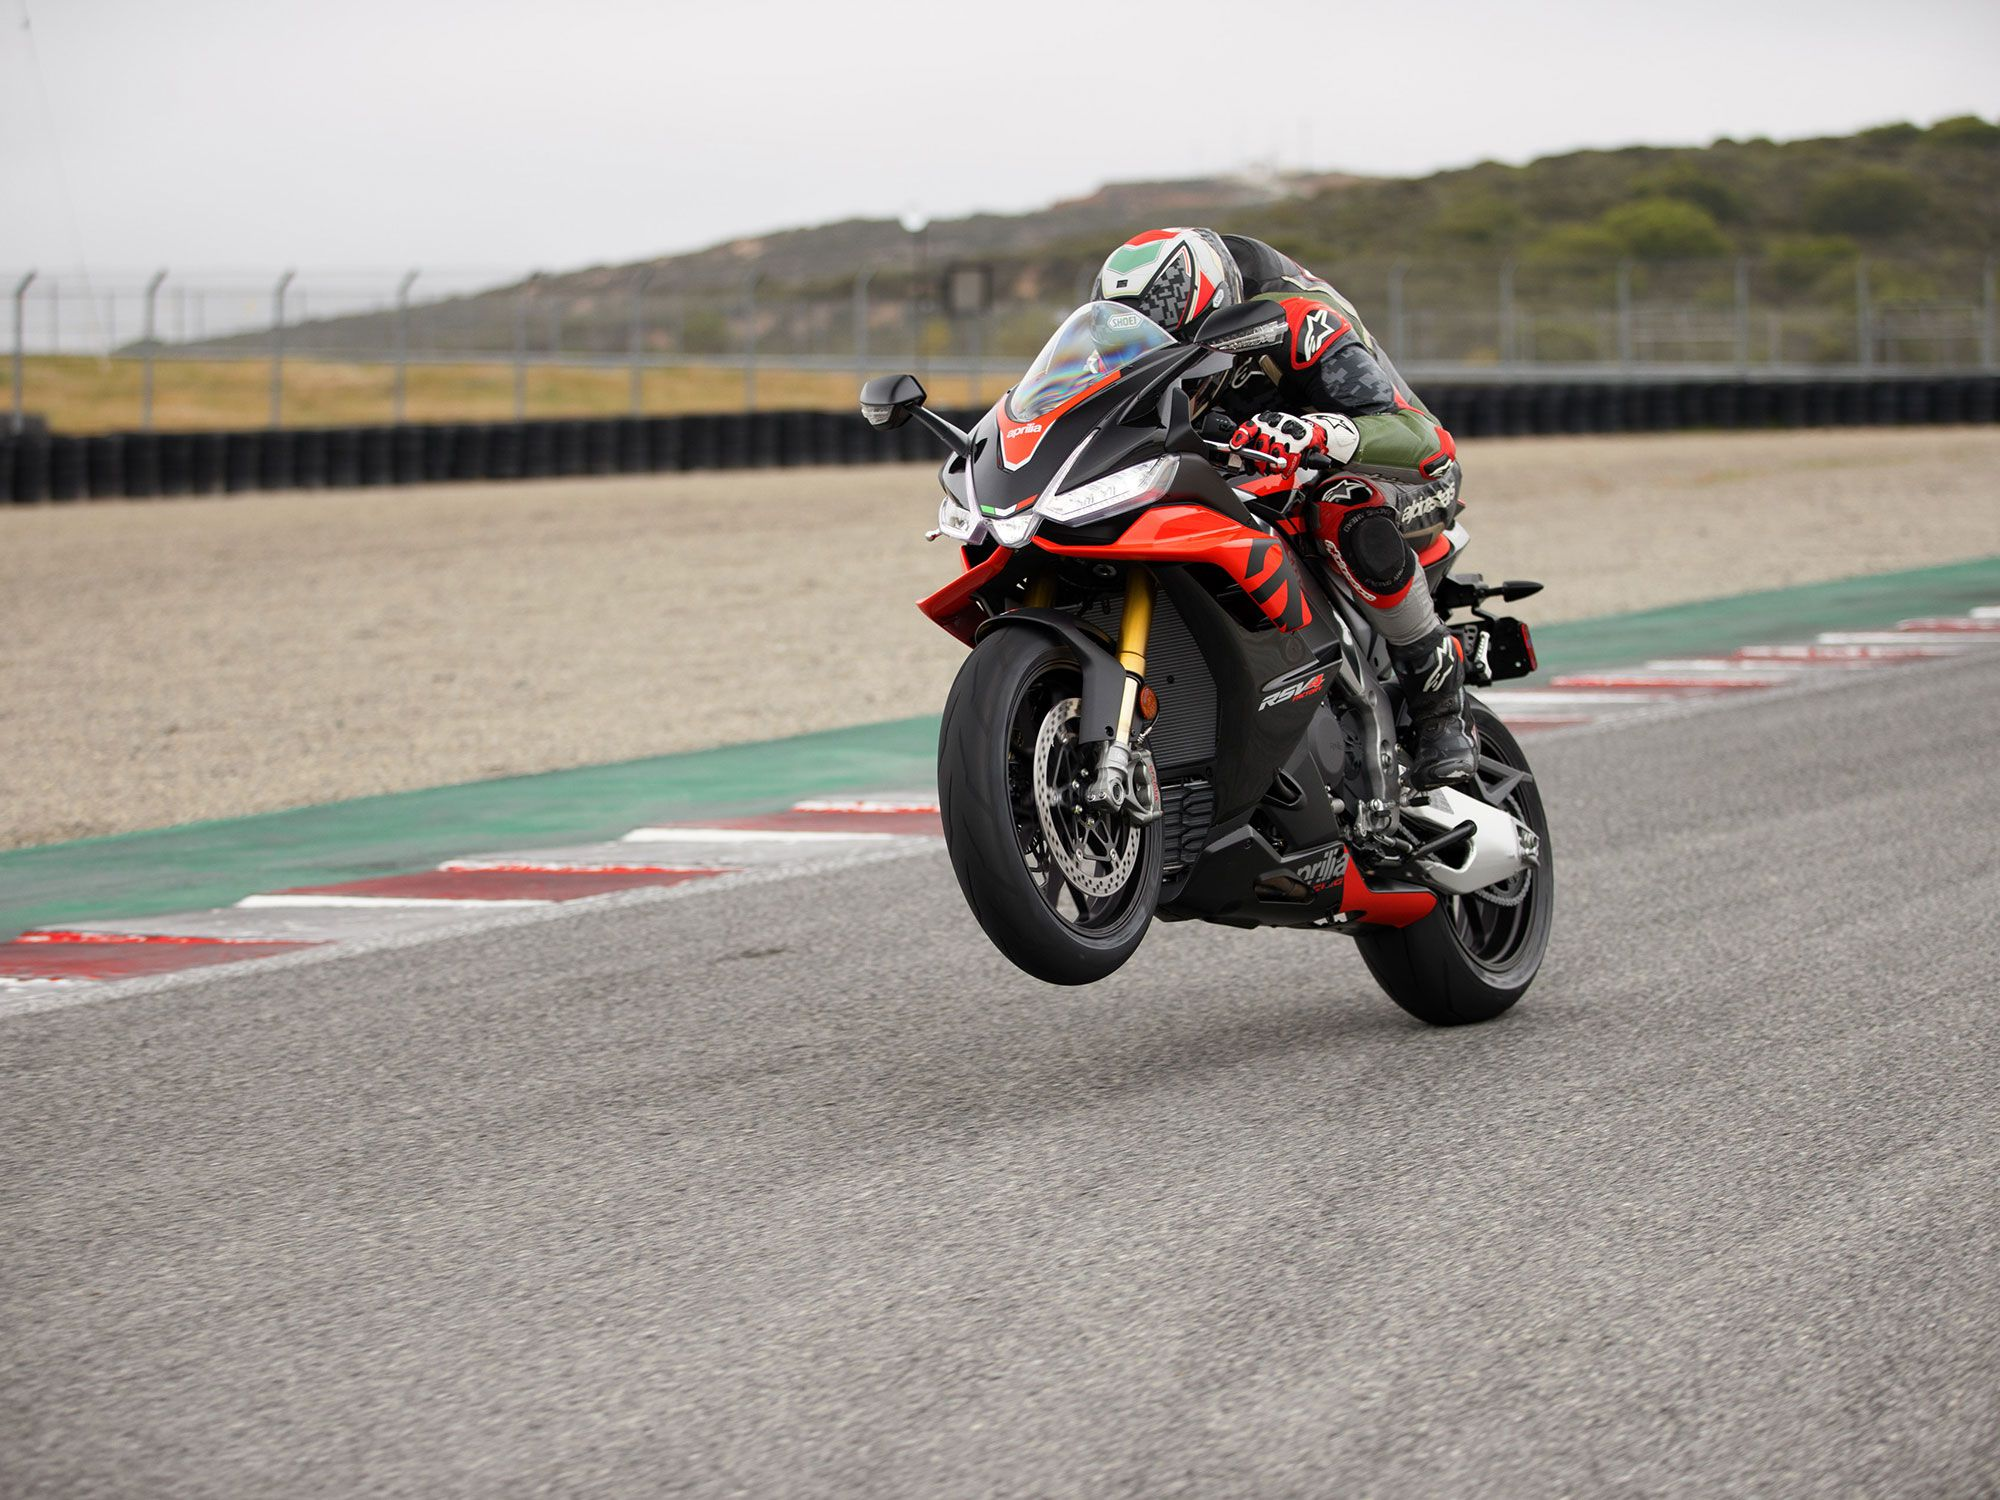 Just when you think it can't build 'em any faster, Aprilia delivers an even more powerful RSV4. It pumps out 190 ponies at the back tire.